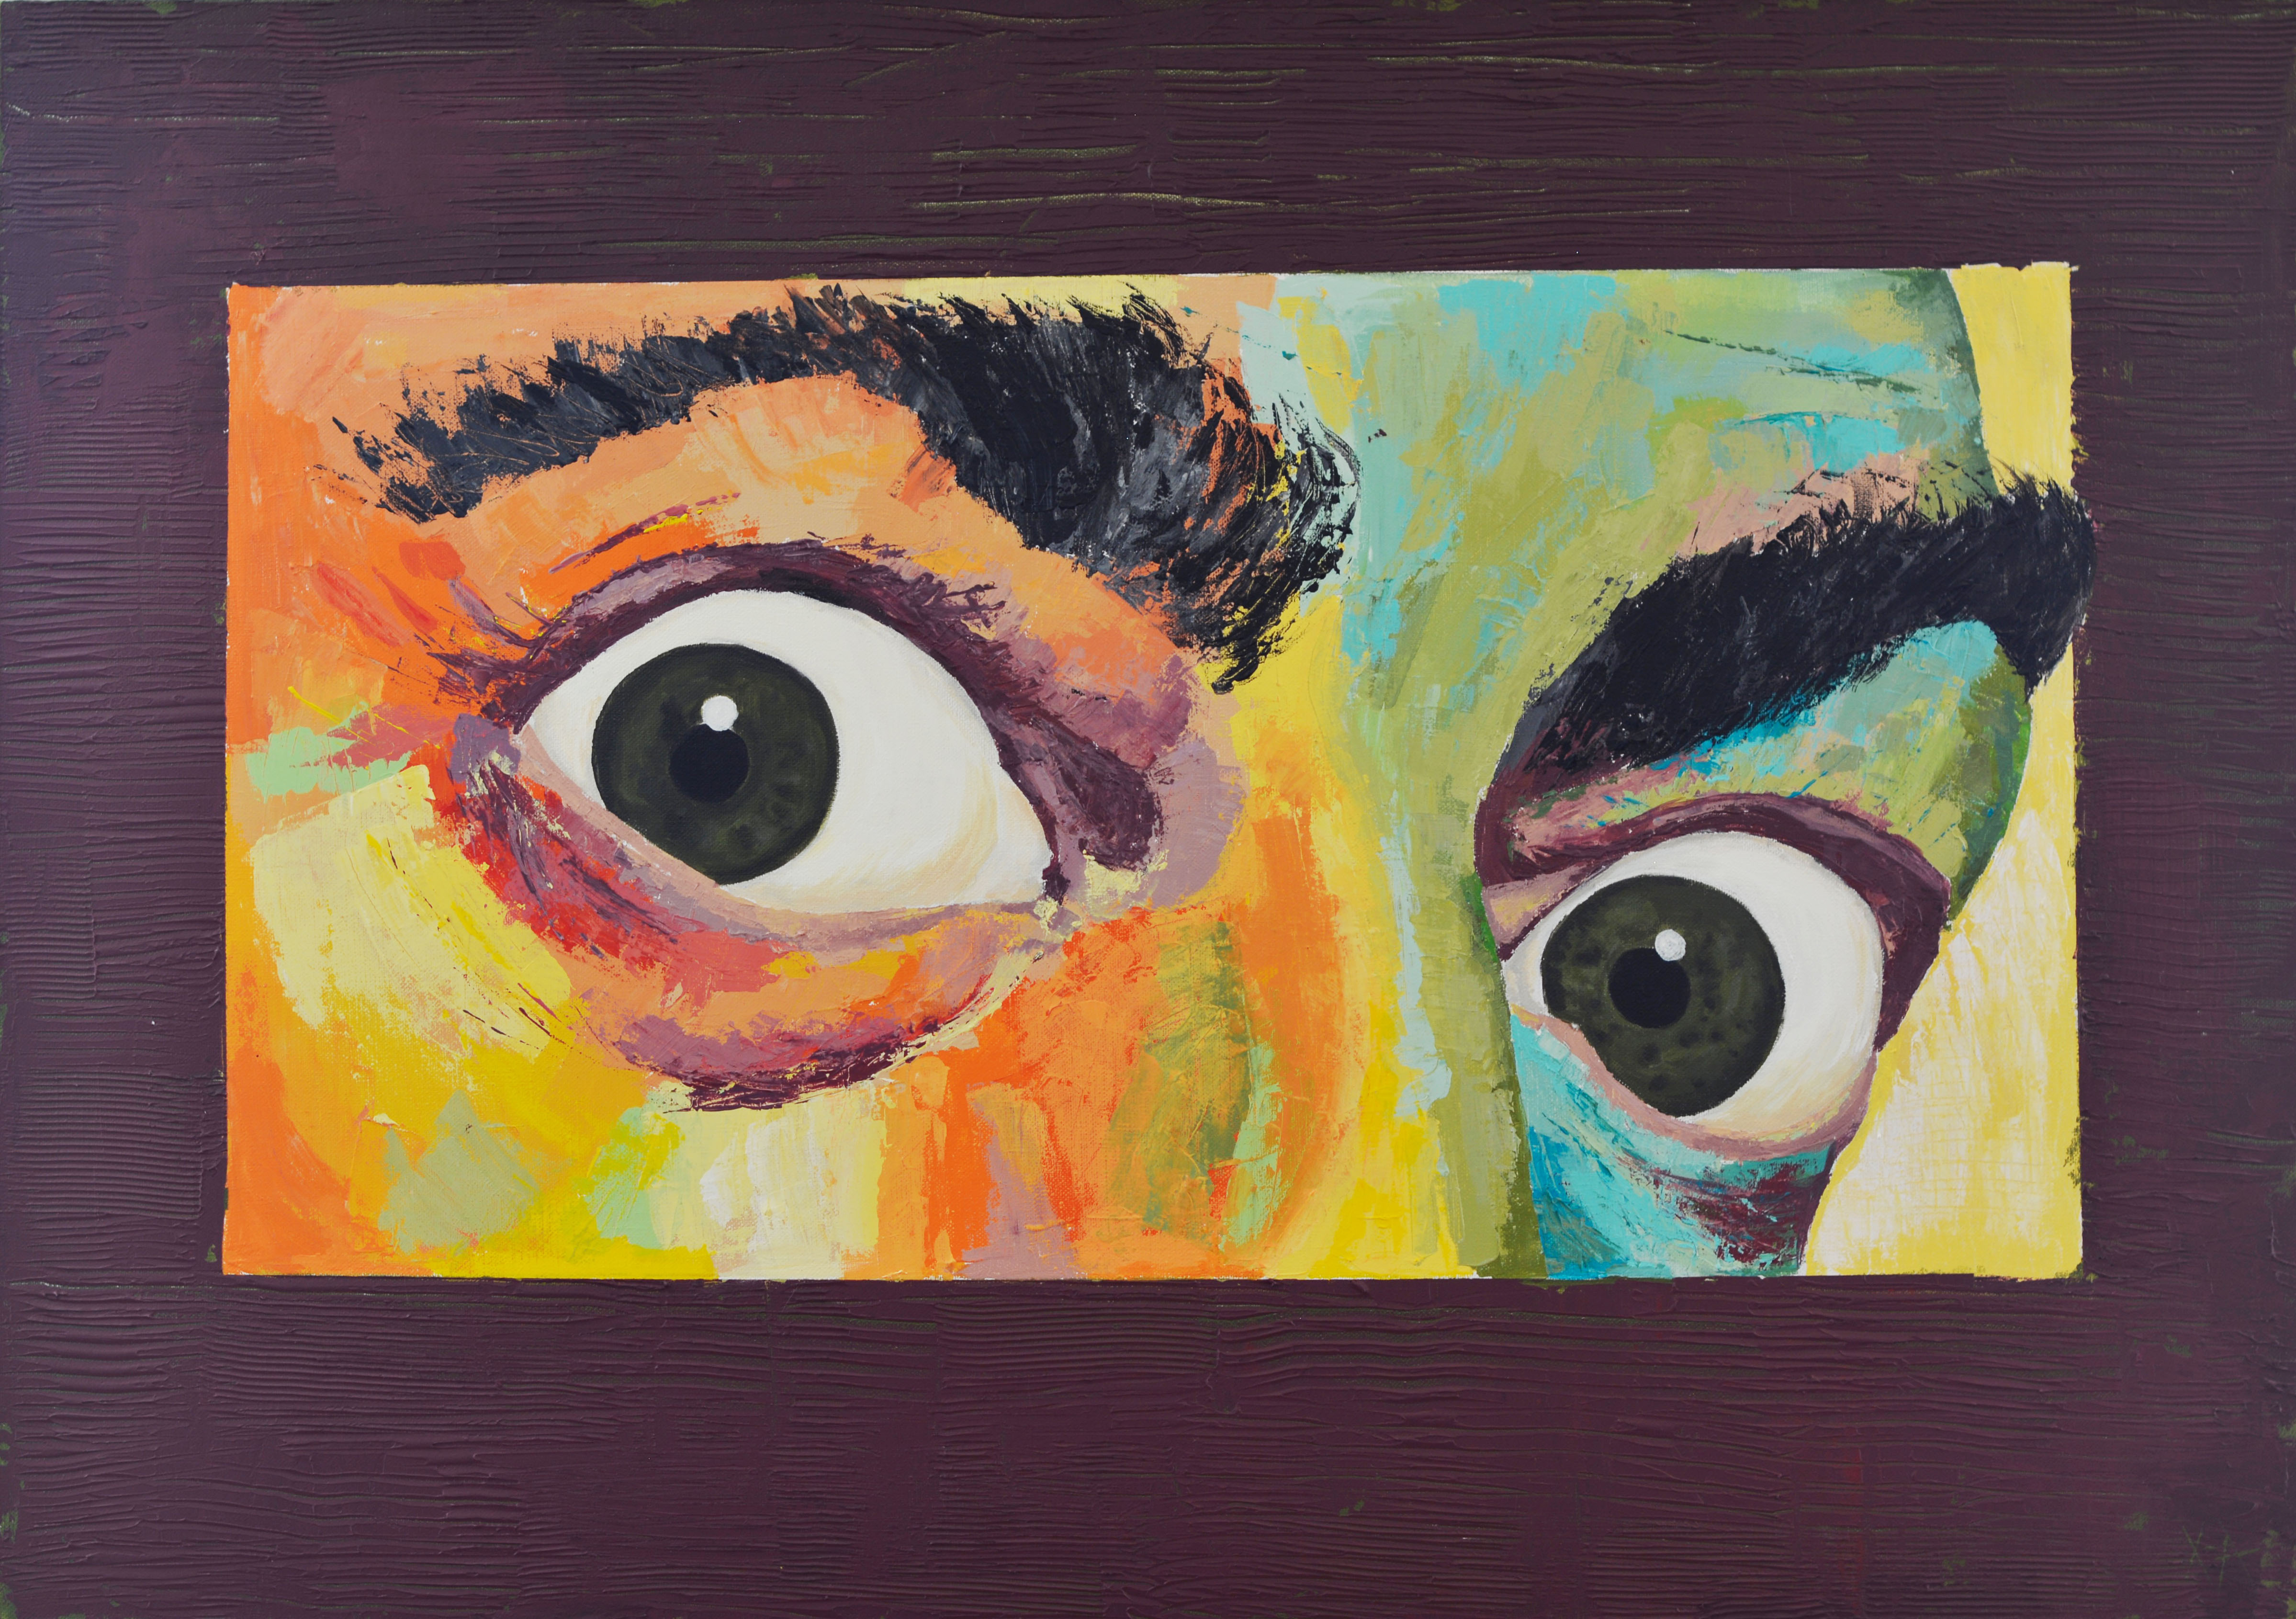 Salvador Dali The Eyes Of The Genius  artwork by Hristina Dinkova - art listed for sale on Artplode